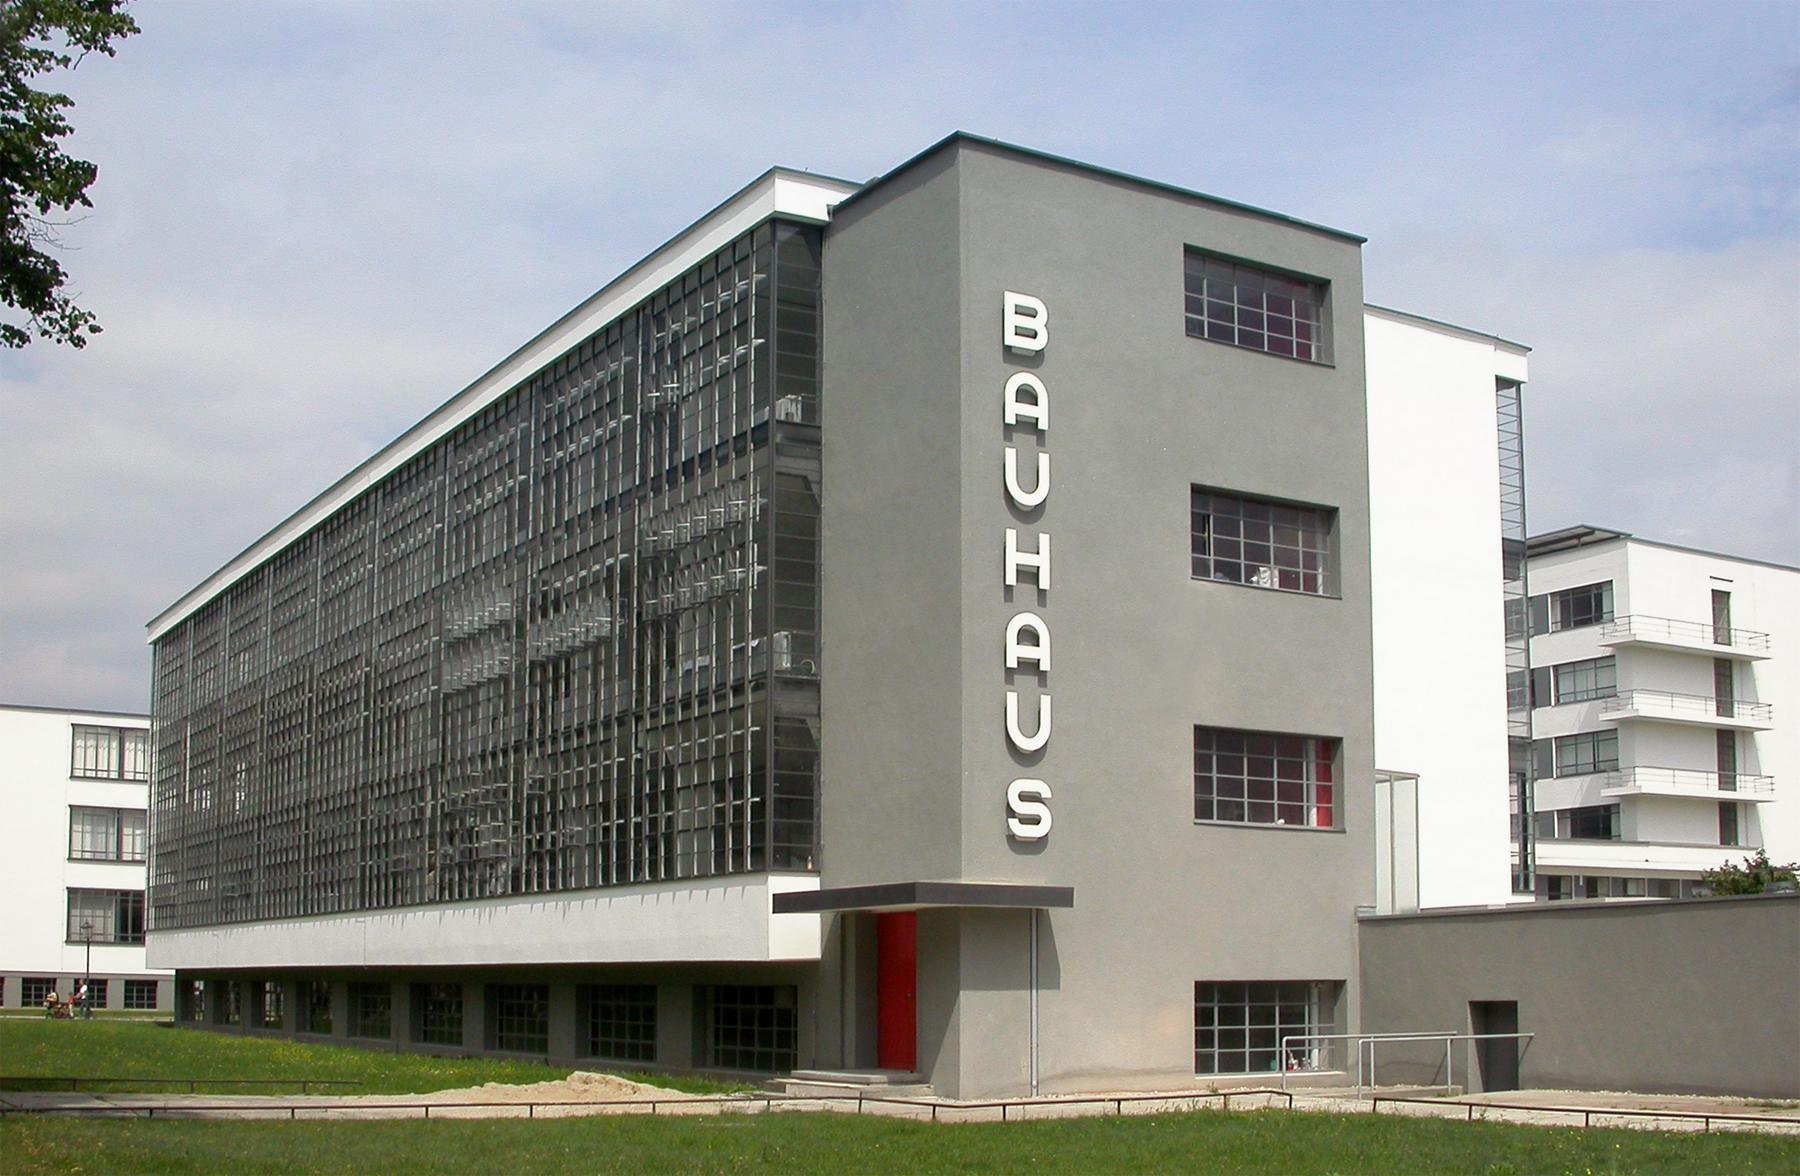 The Bauhaus in Dessau, Germany